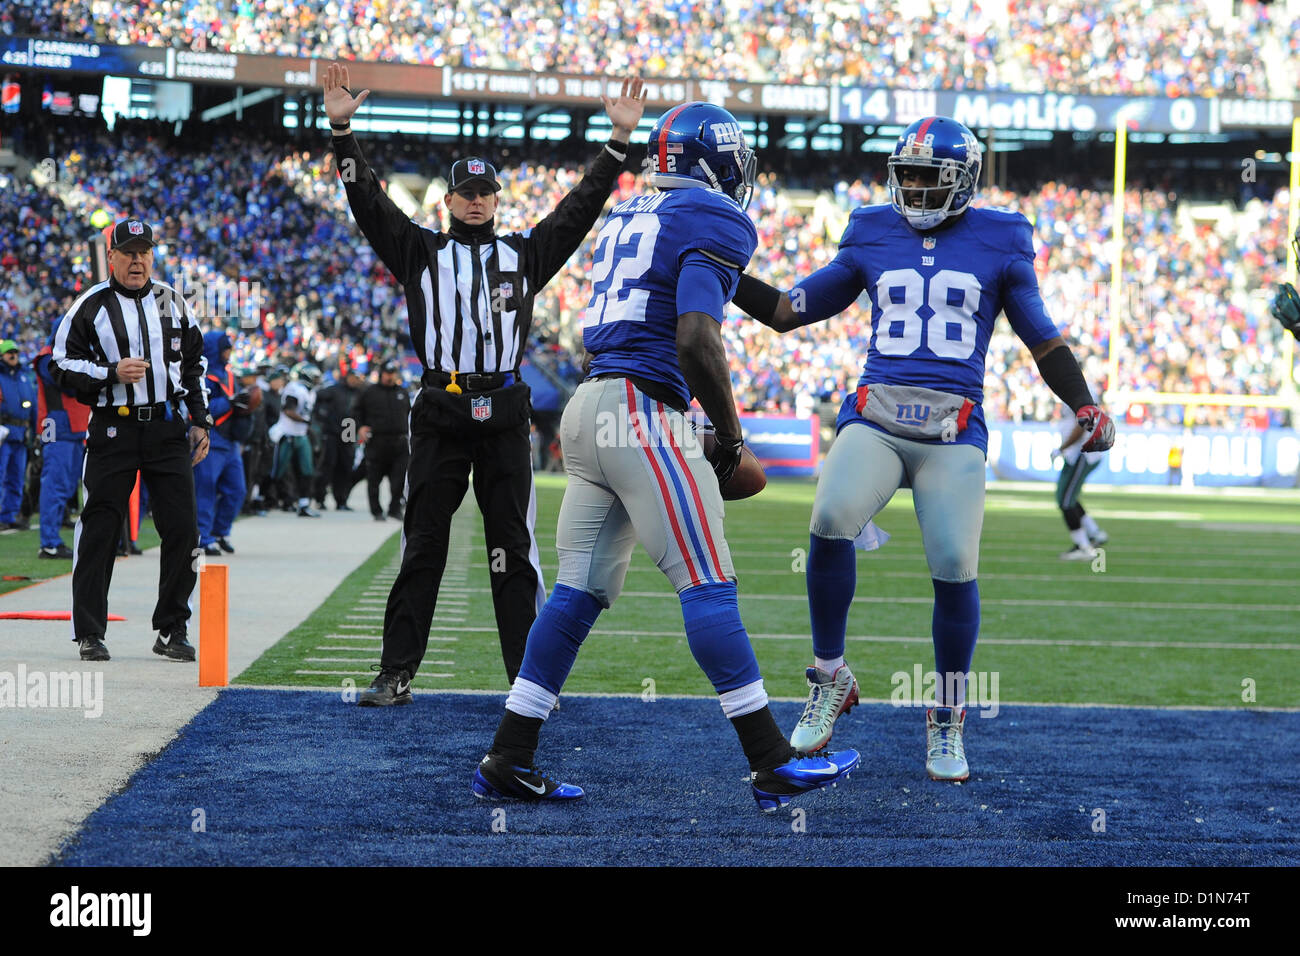 Hot New Jersey, USA. 30 December 2012: New York Giants running back